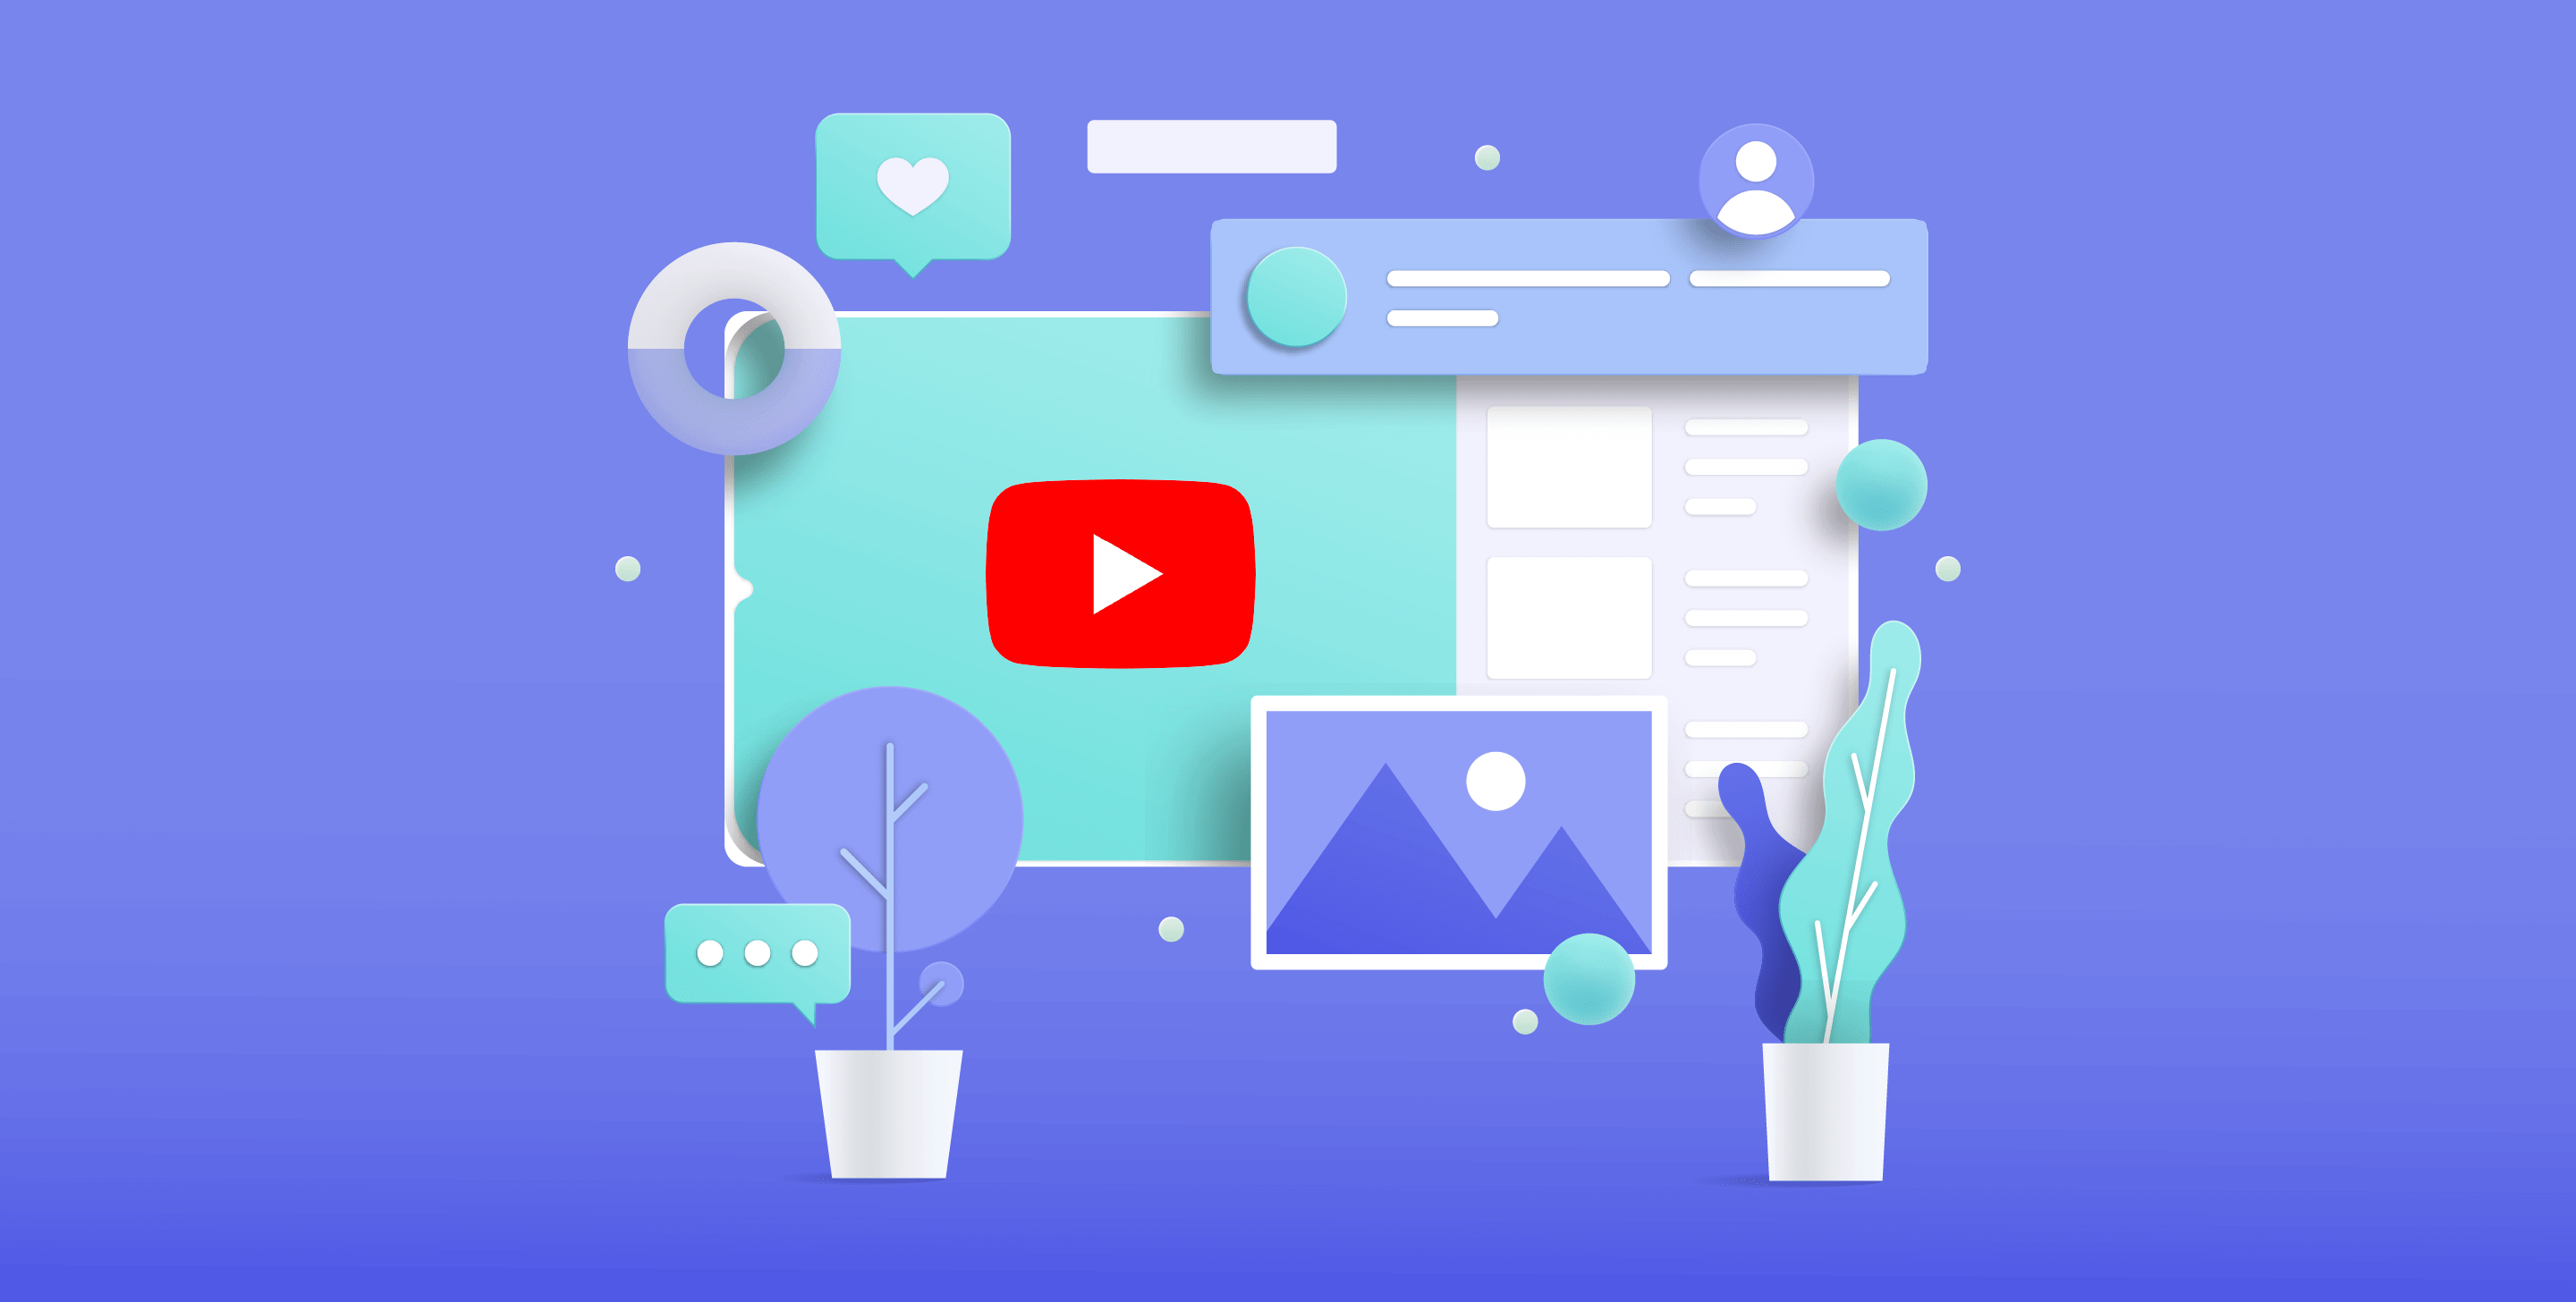 How to Add or Embed Youtube Videos to Your Website?